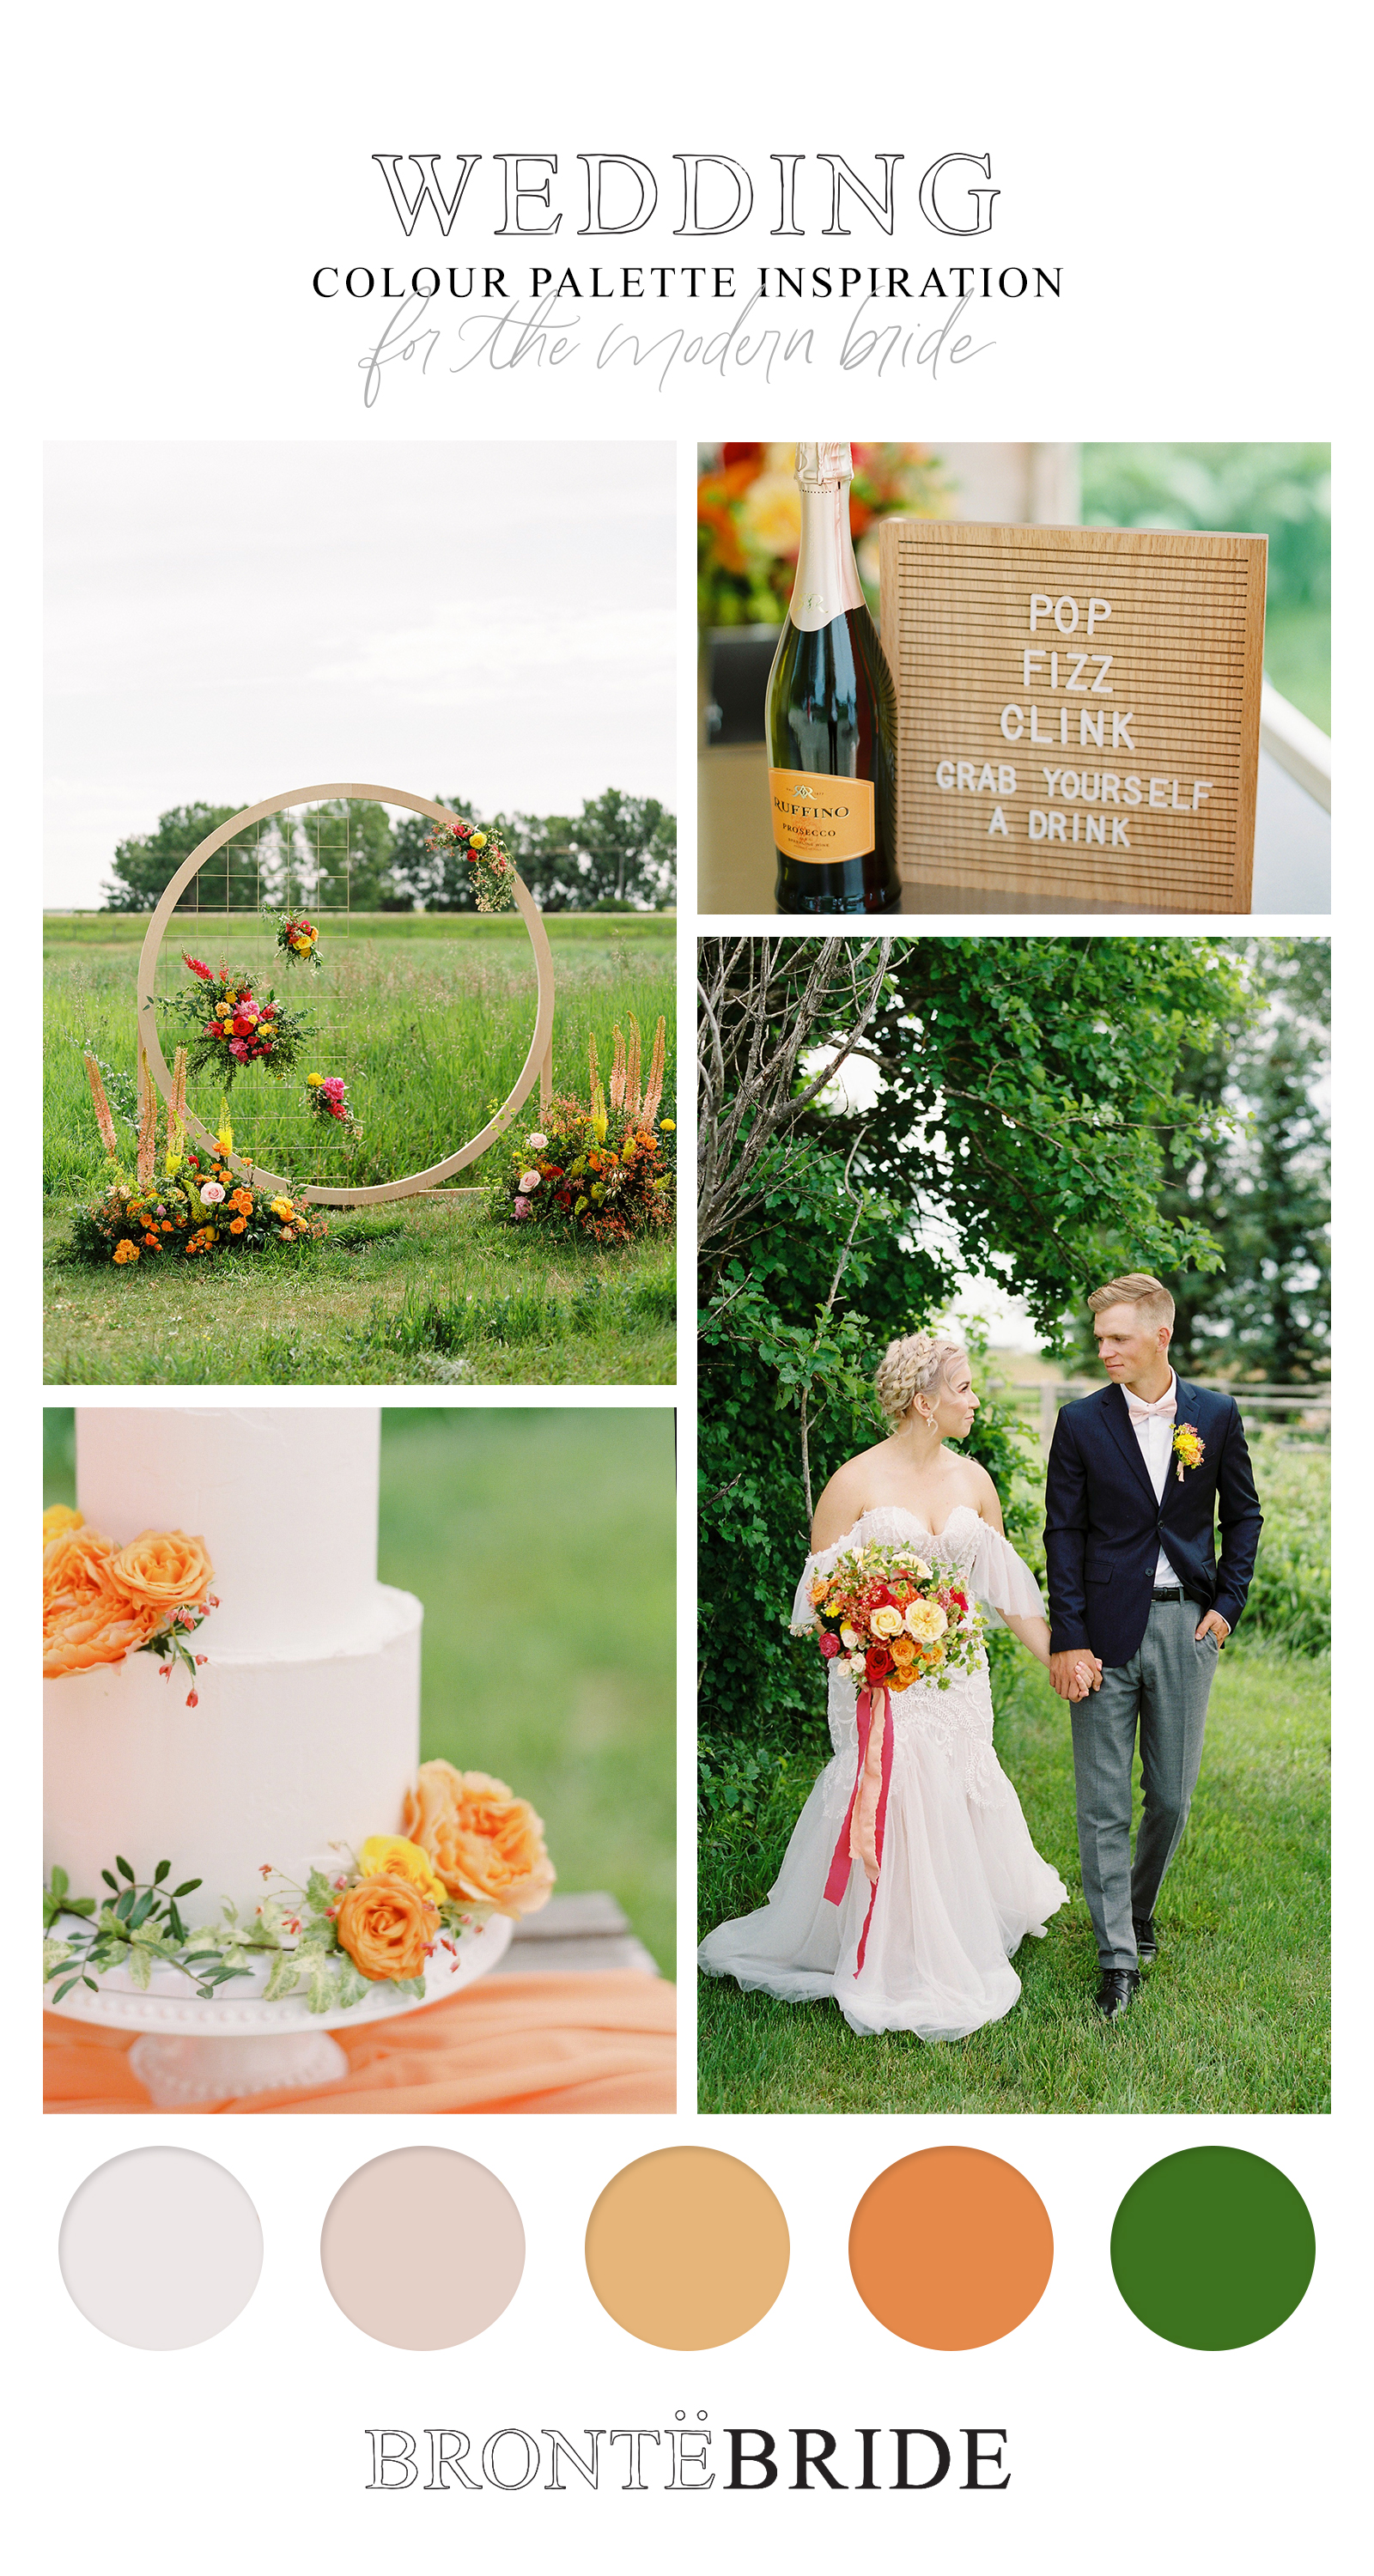 Farmhouse Chic: A Vibrant Wedding Inspiration Shoot at the Gathered - Wedding Colour Palette Inspiration - on the Bronte Bride Blog